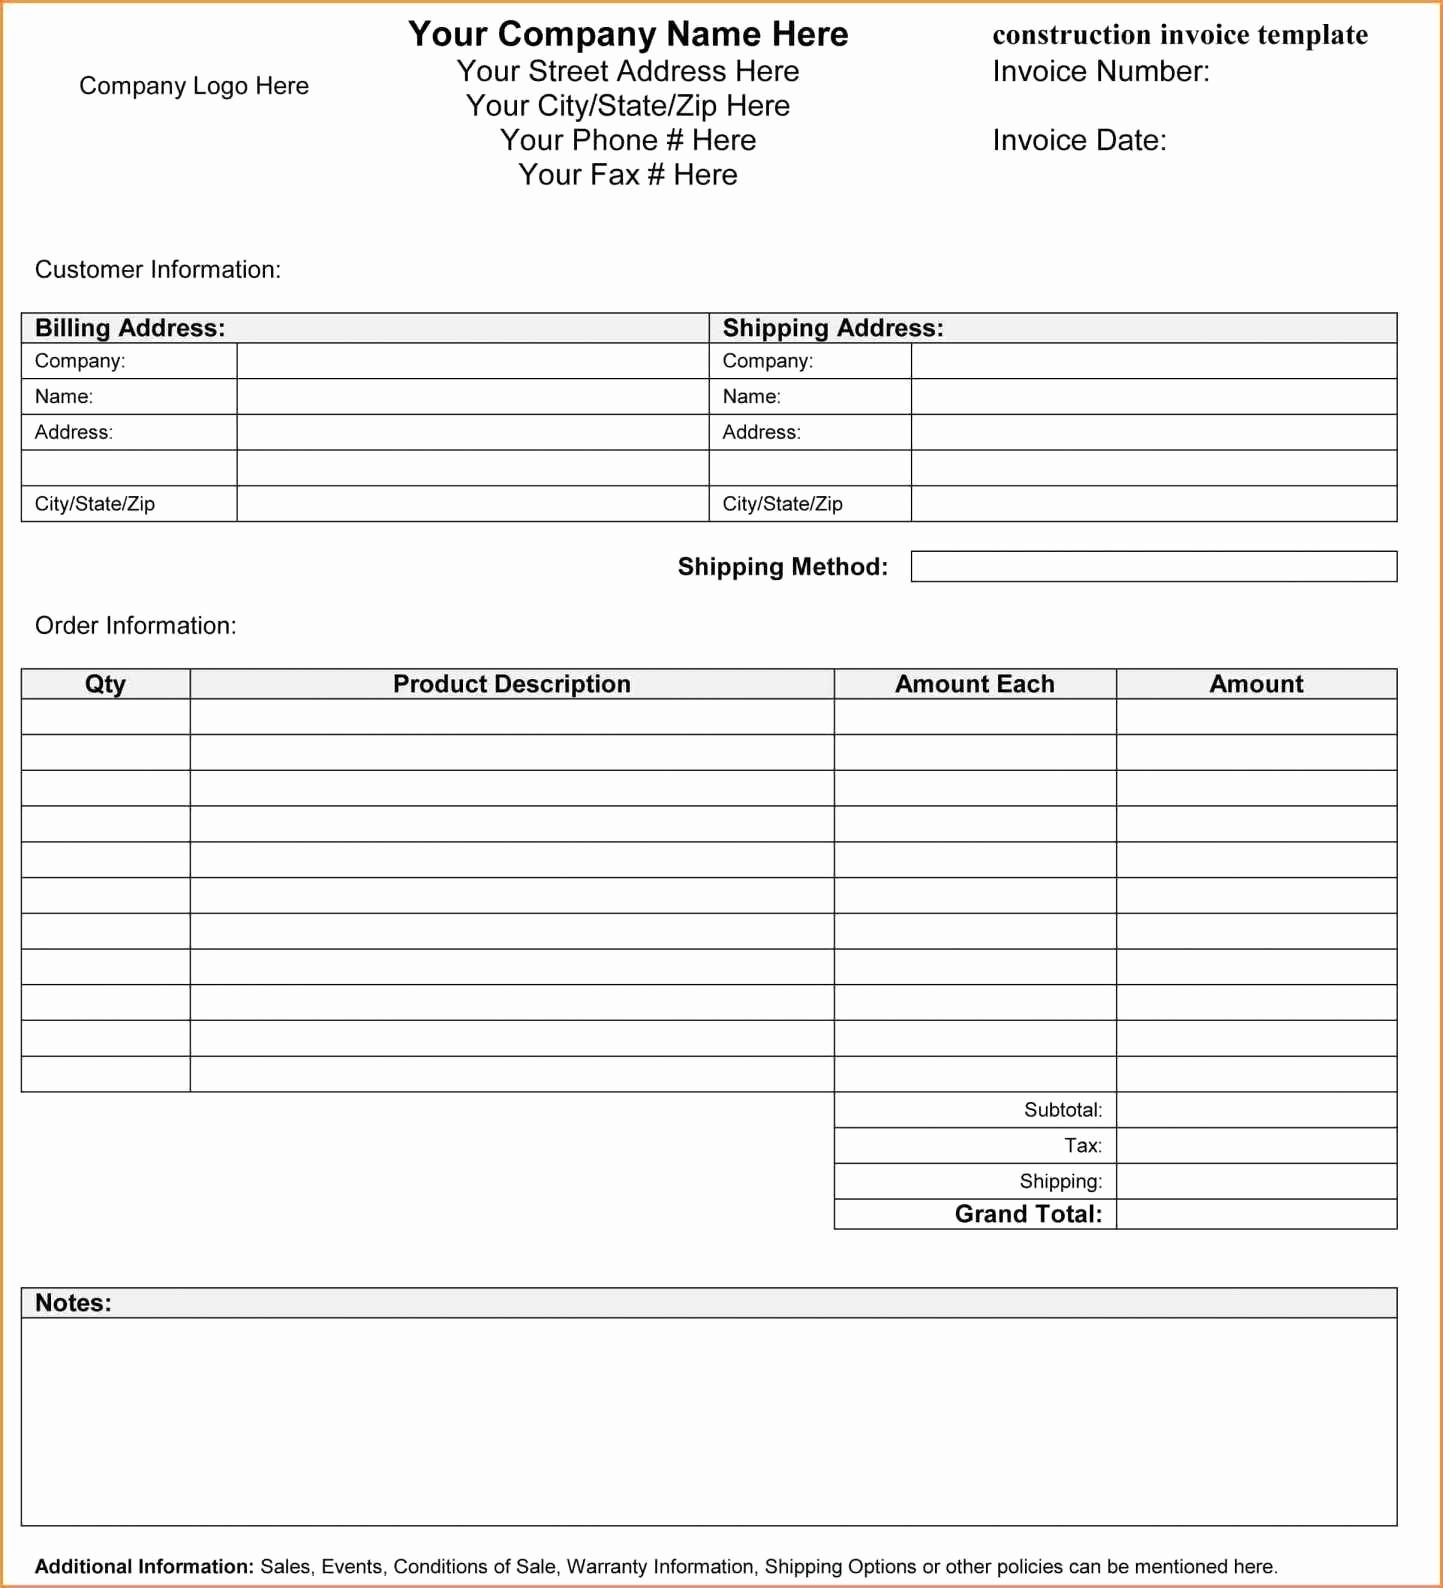 Construction Invoice Template Xls